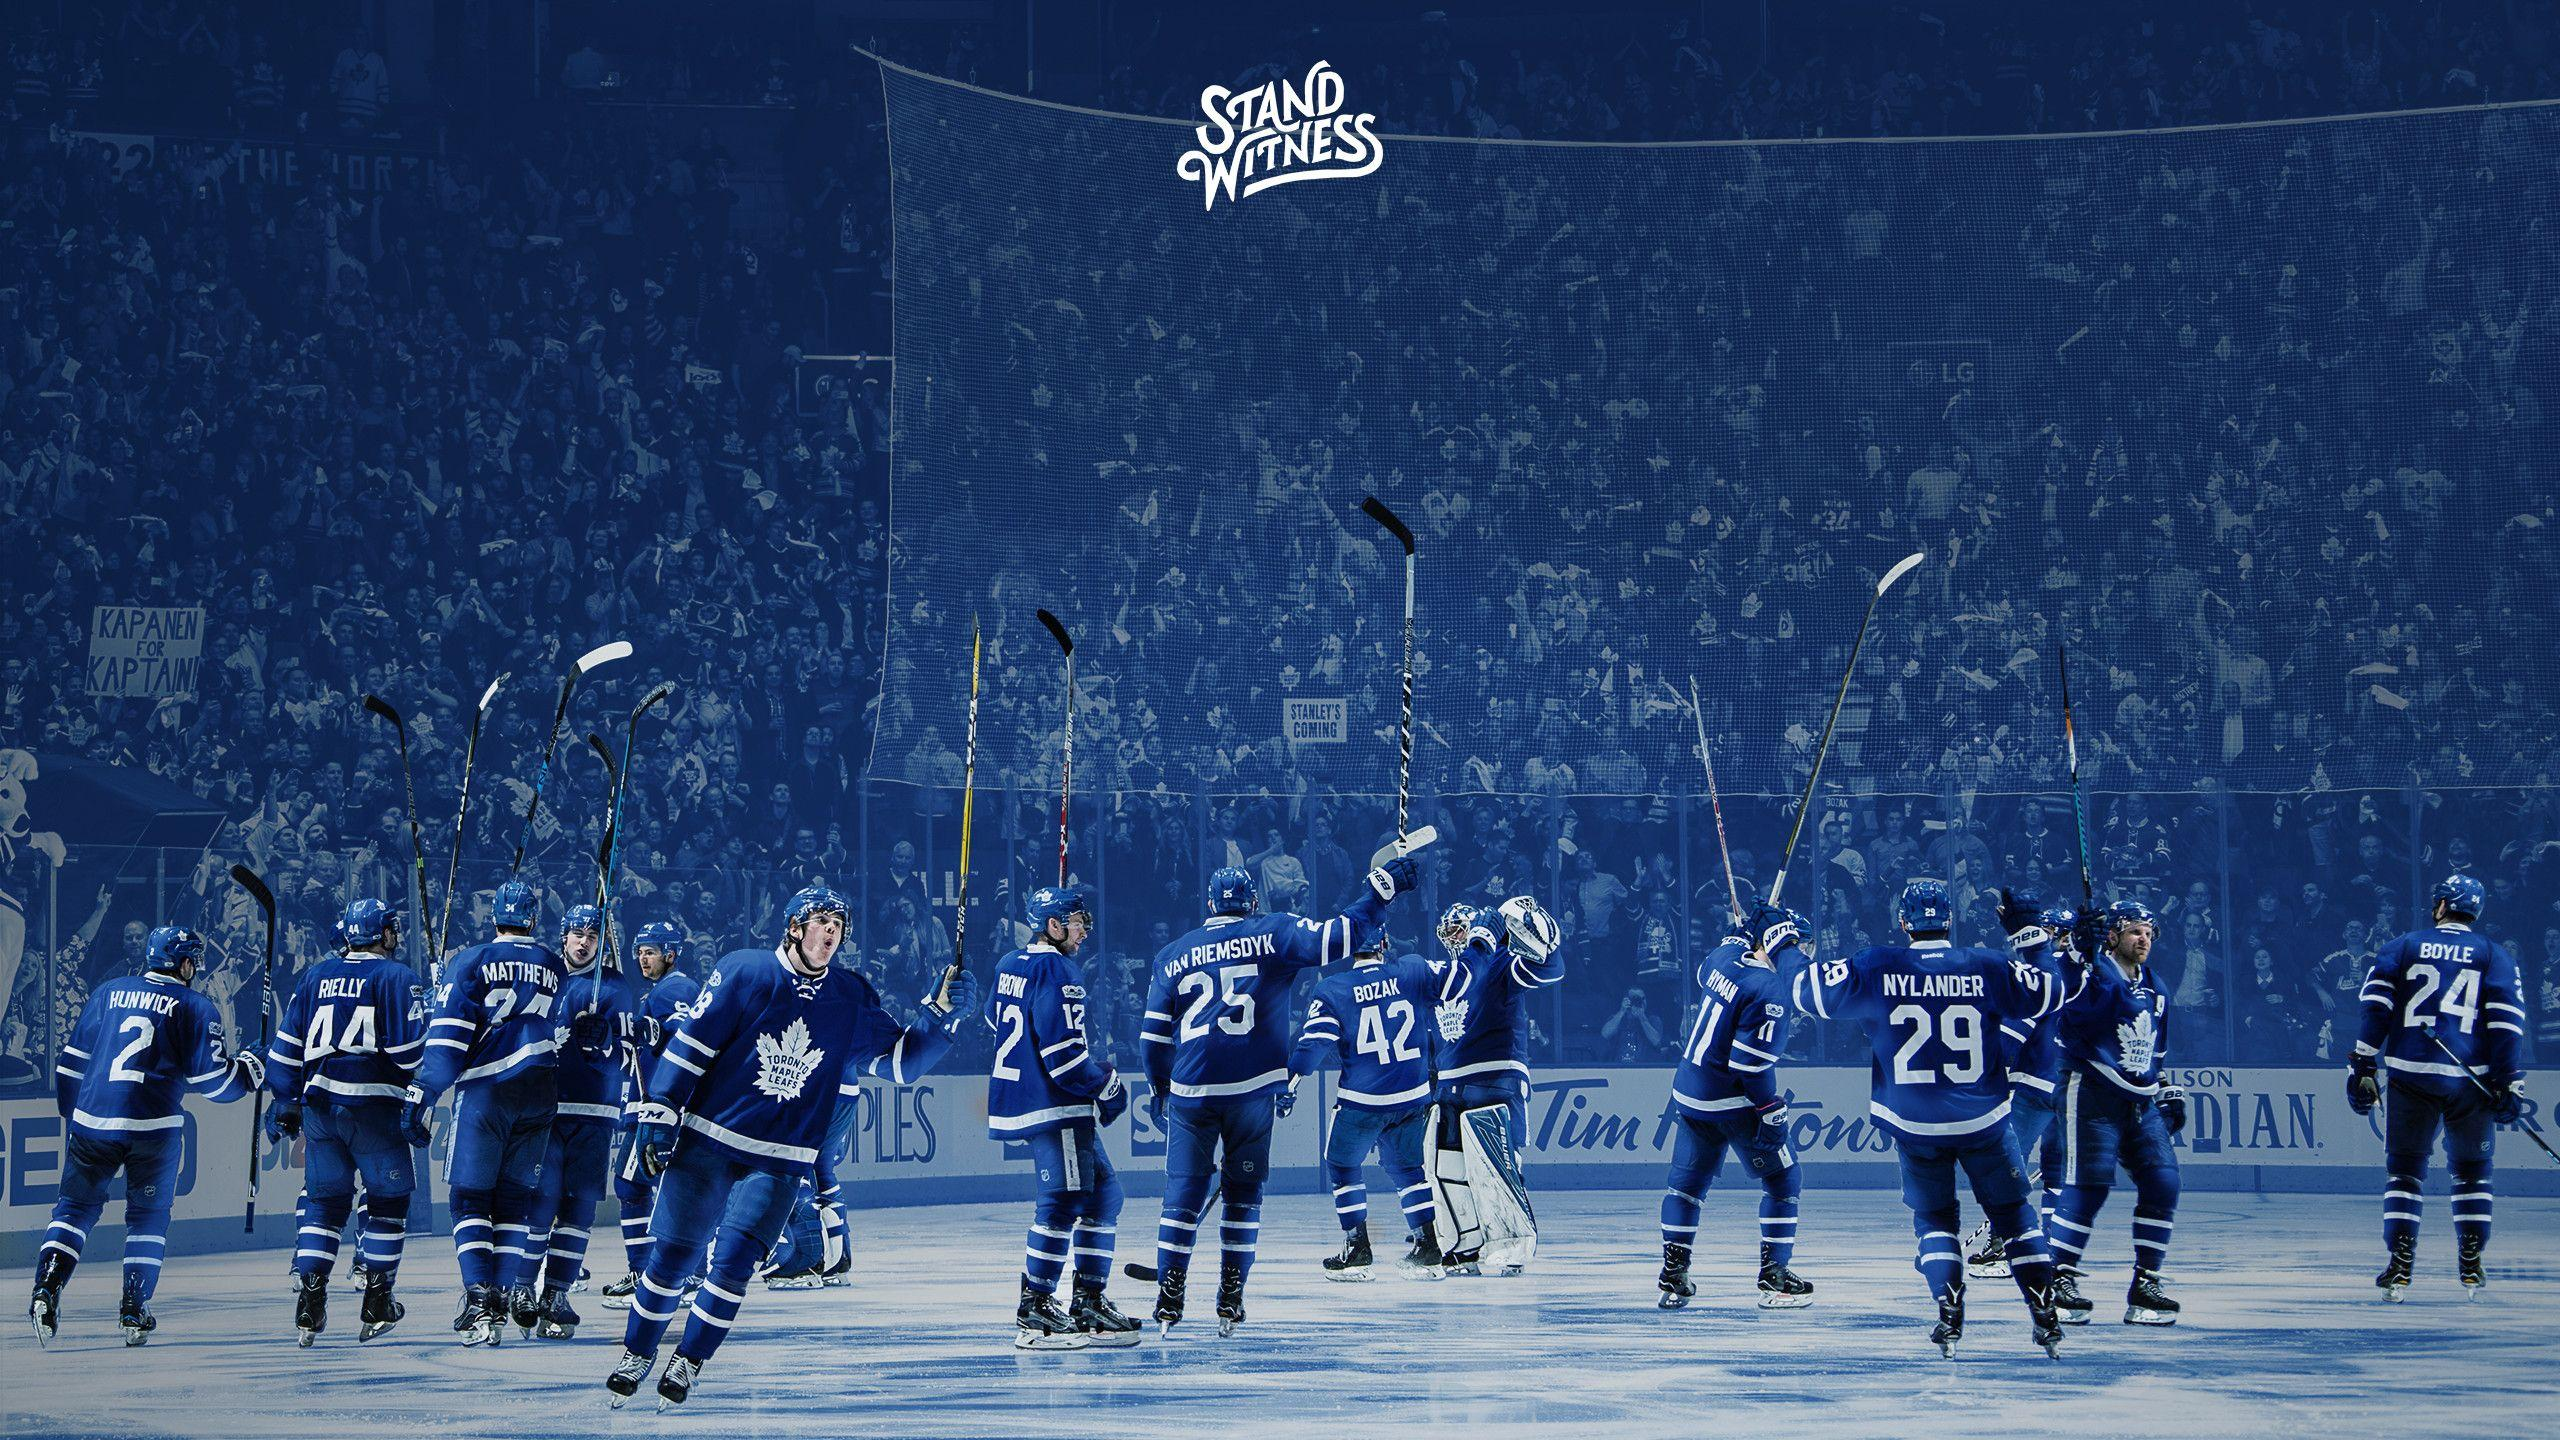 Toronto Maple Leafs 2018 Wallpapers Wallpaper Cave